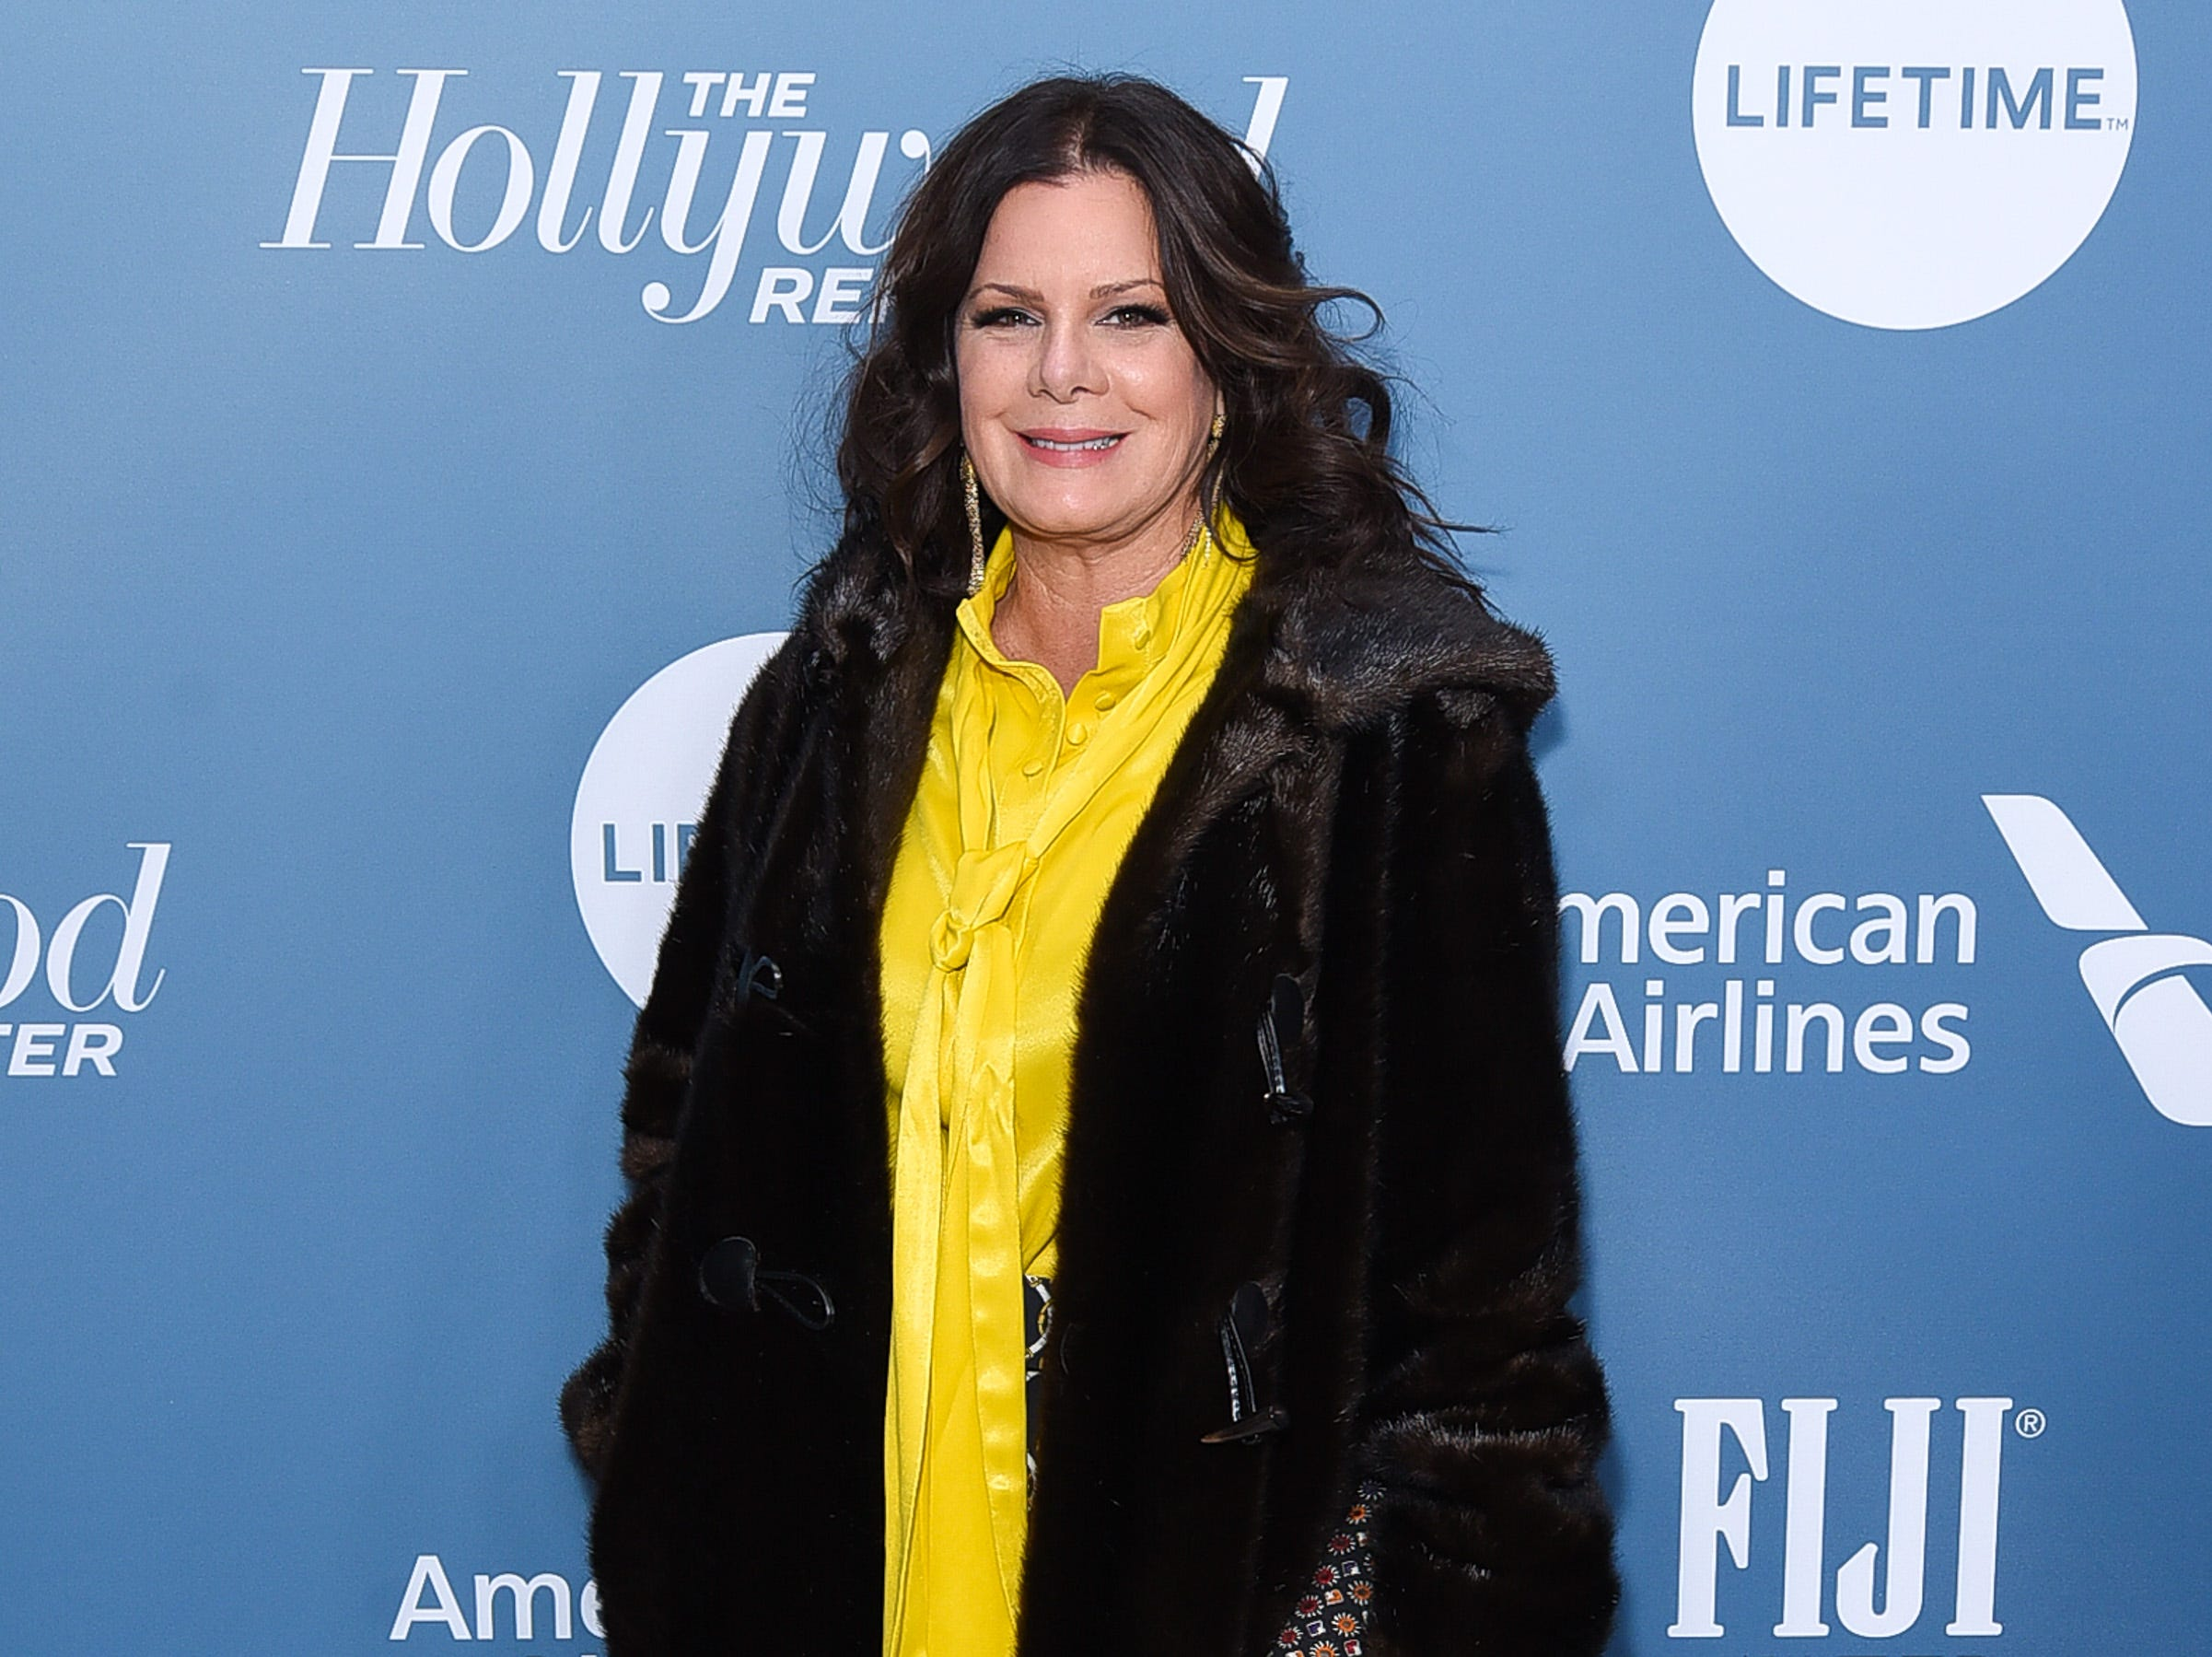 LOS ANGELES, CALIFORNIA - DECEMBER 05: Marcia Gay Harden attends The Hollywood Reporter's Power 100 Women In Entertainment at Milk Studios on December 05, 2018 in Los Angeles, California. (Photo by Presley Ann/Getty Images) ORG XMIT: 775264723 ORIG FILE ID: 1077829282